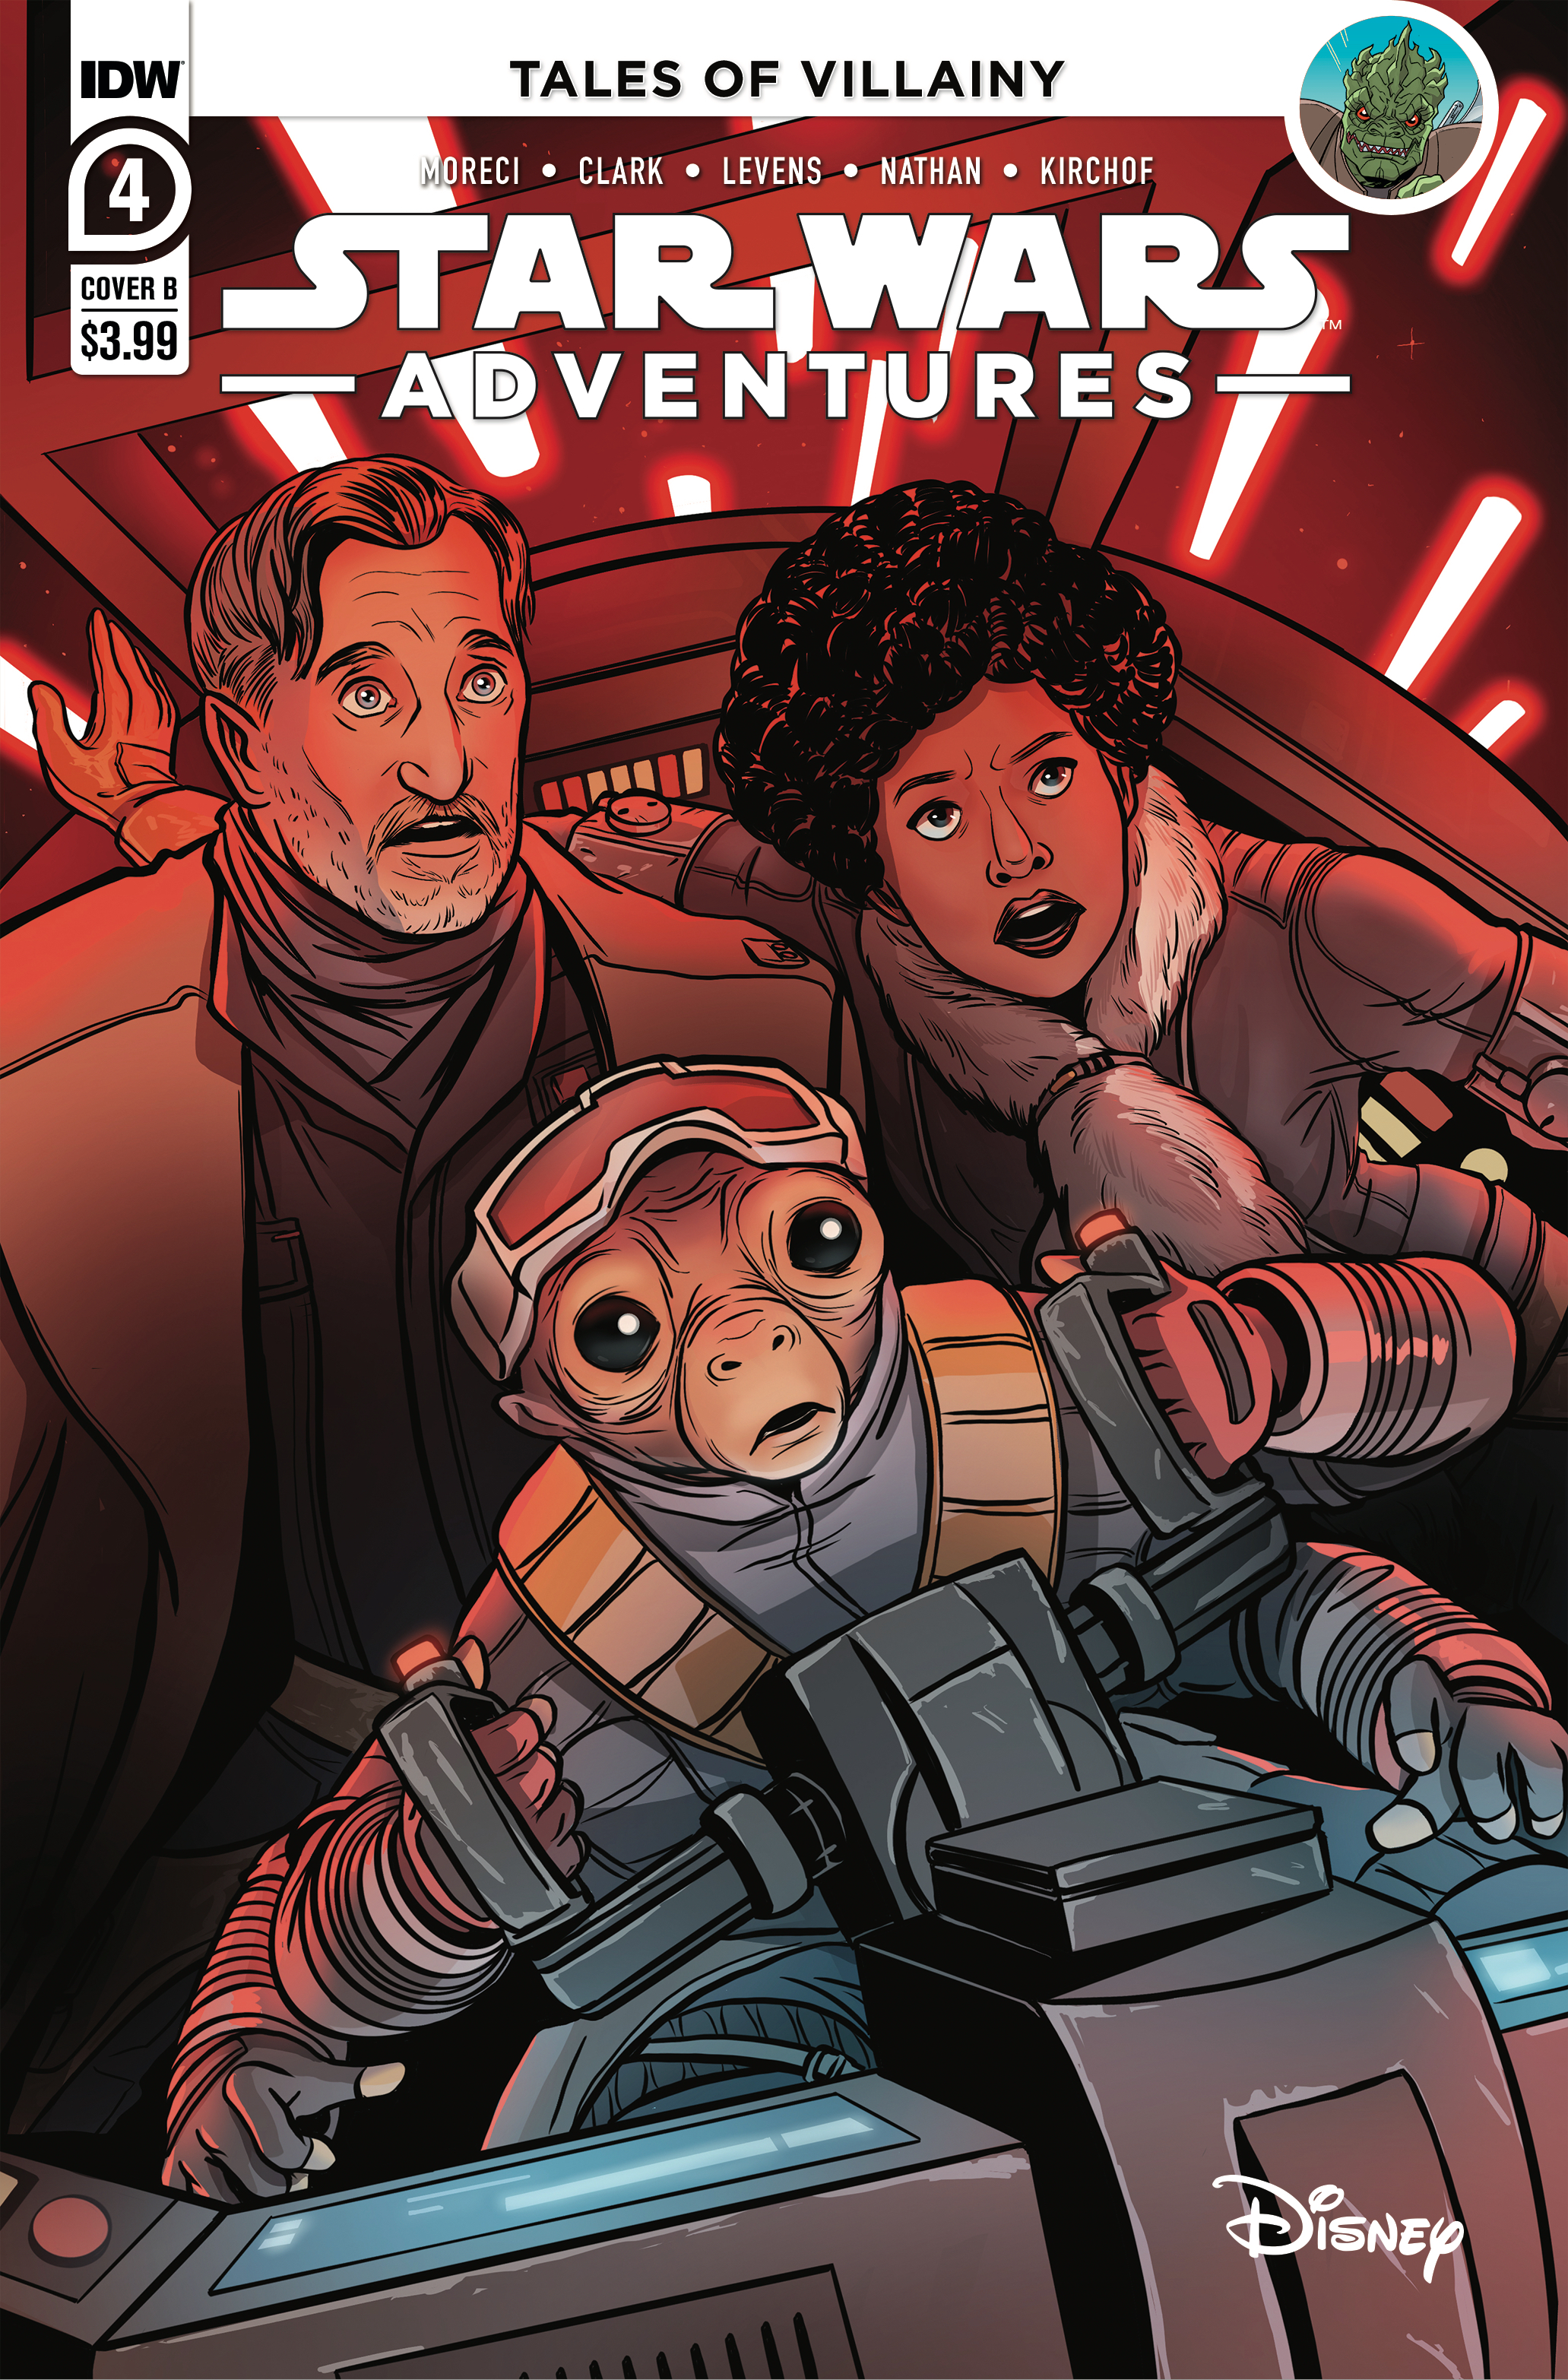 Star Wars Adventures #4 (Cover B by Yael Nathan) (13.01.2021)